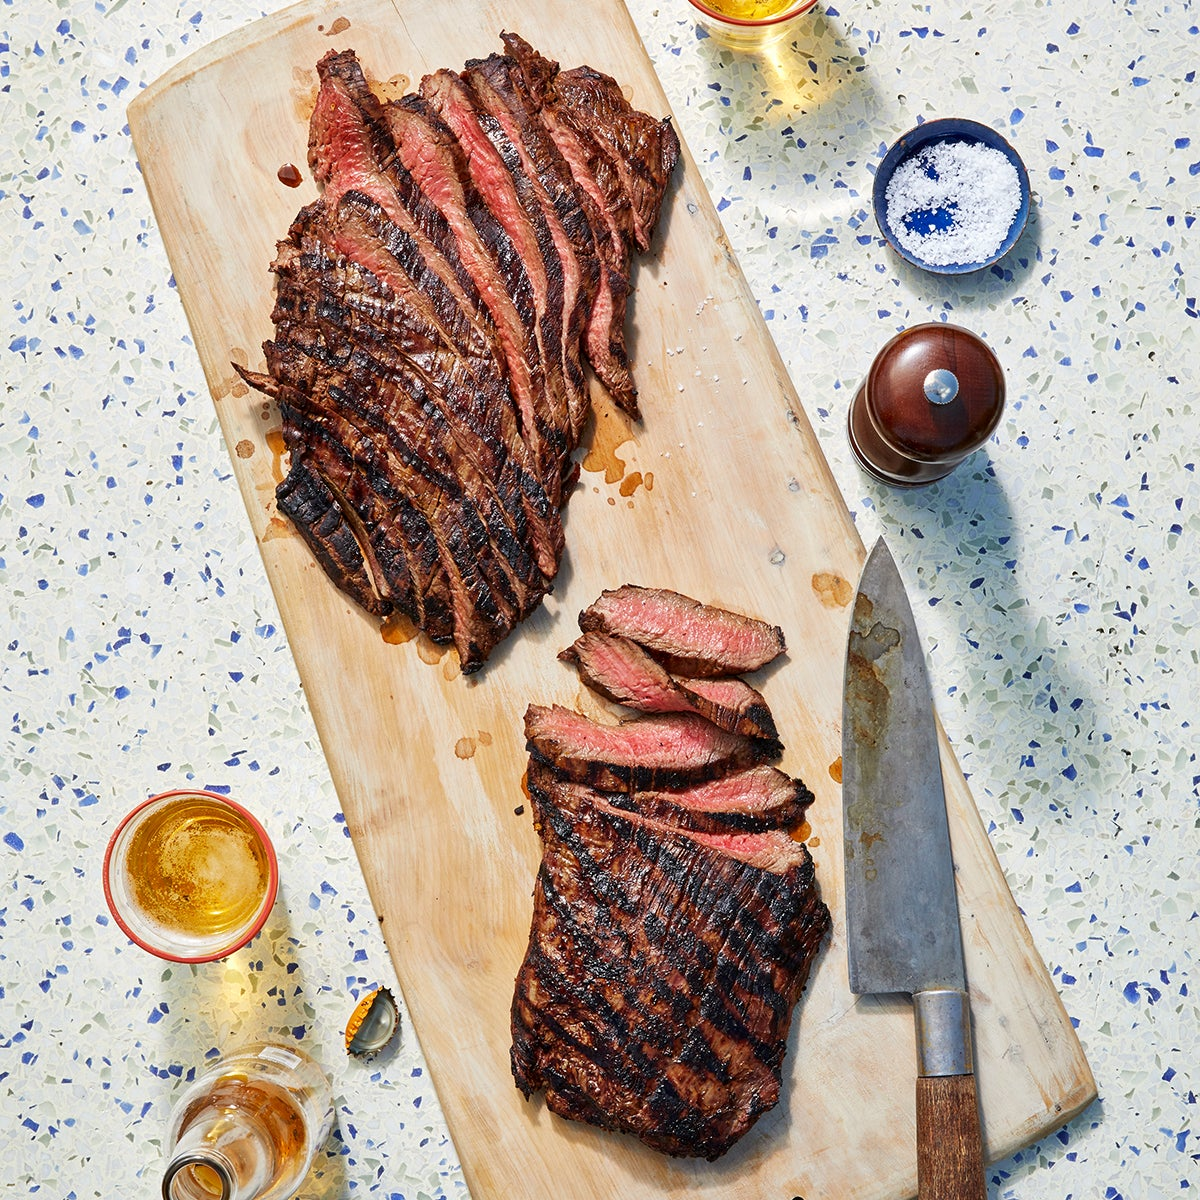 Soy marinated grilled steak